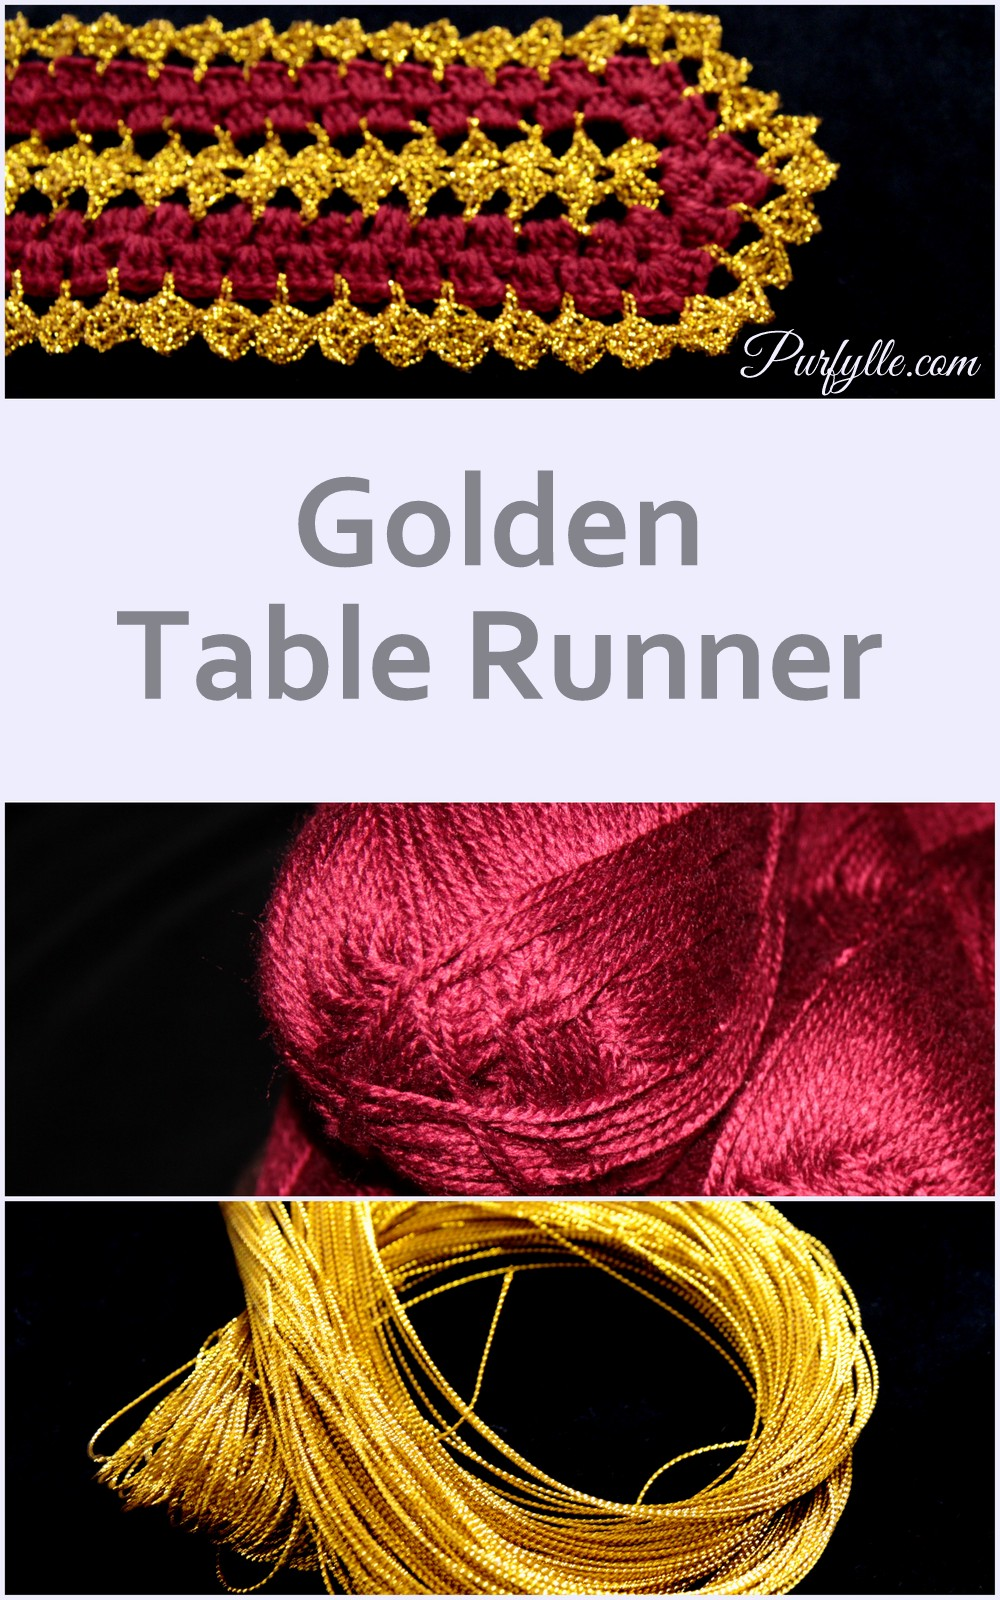 Golden Table Runner Free Crochet Pattern